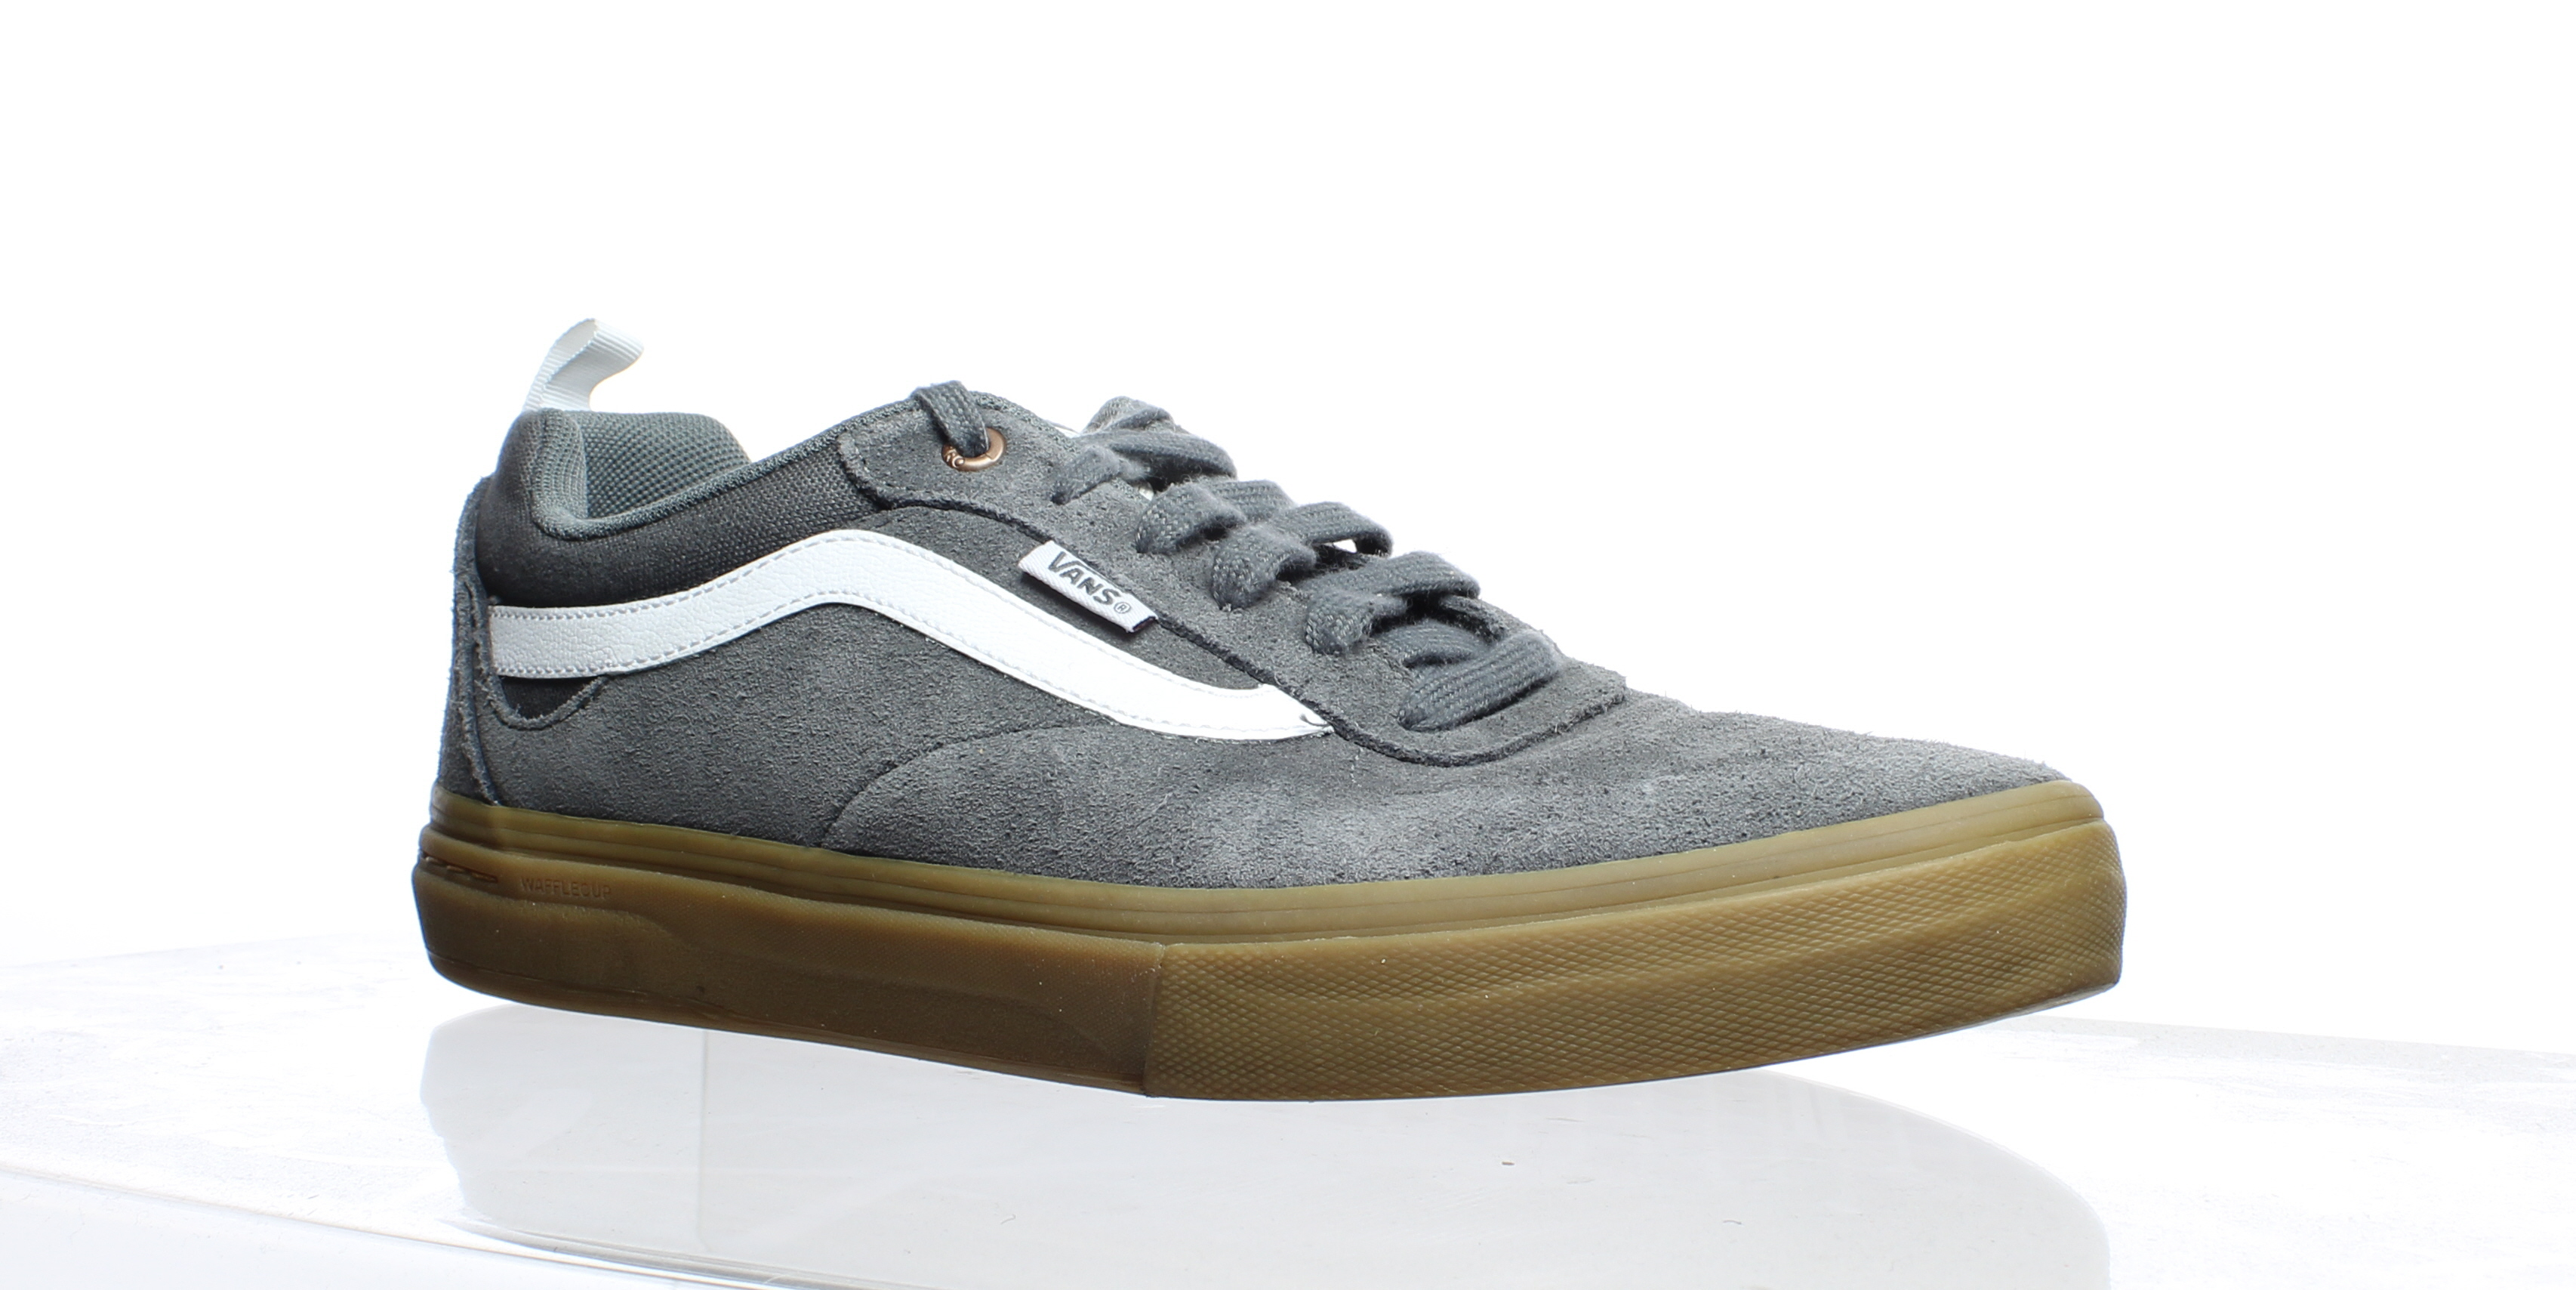 7d5660ebbffd Vans Mens Kyle Walker Pro Gray Skateboarding Shoes Size 10 (258521 ...